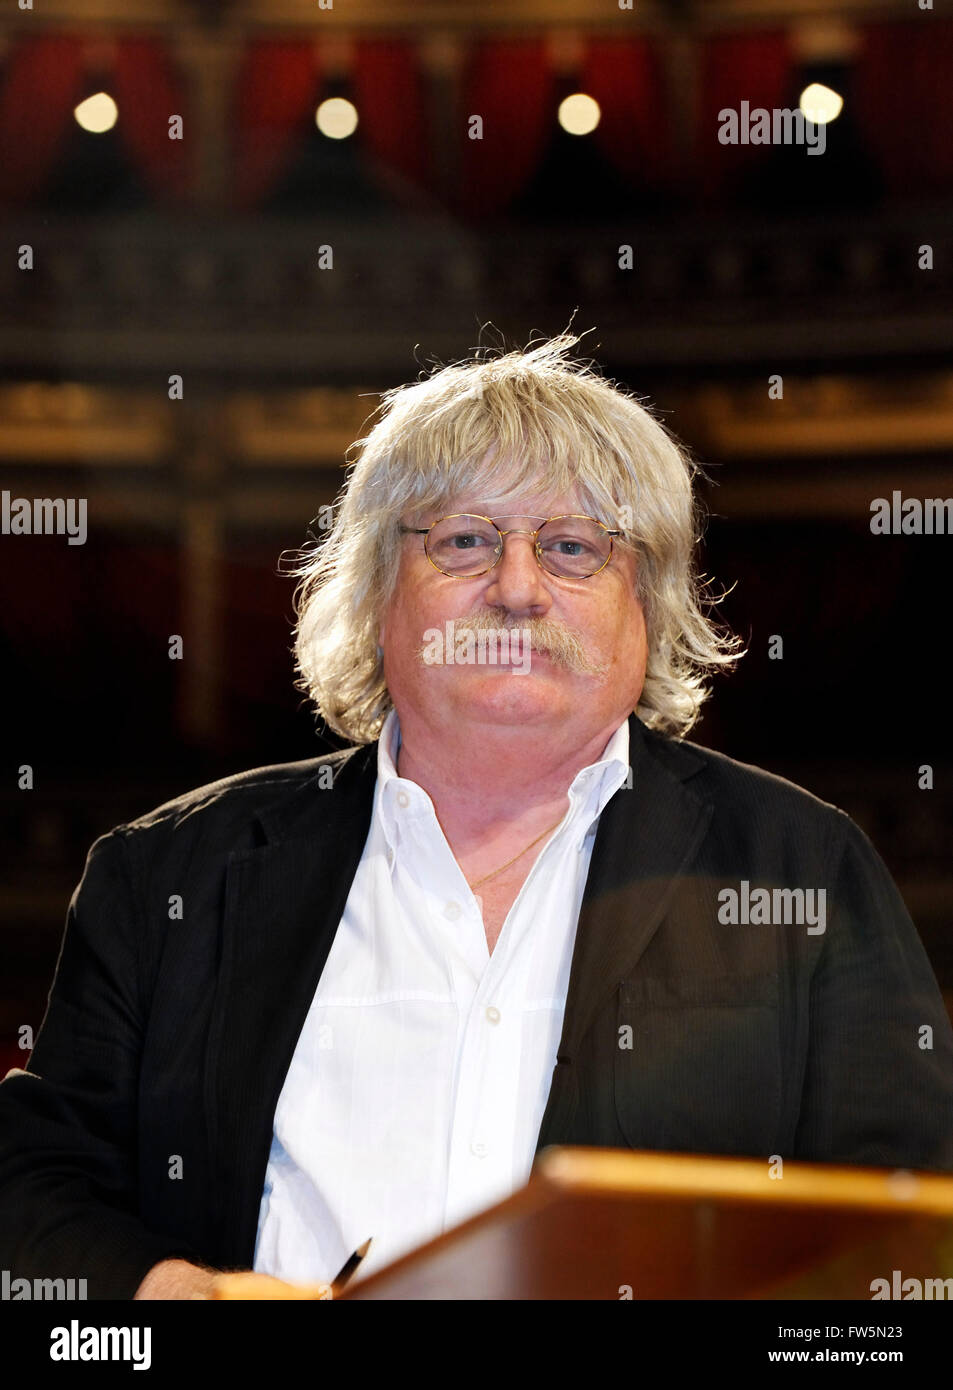 Welsh composer Karl Jenkins at the world premiere of his Gloria, Royal Albert Hall , London, 11 July 2010. The biggest - Stock Image